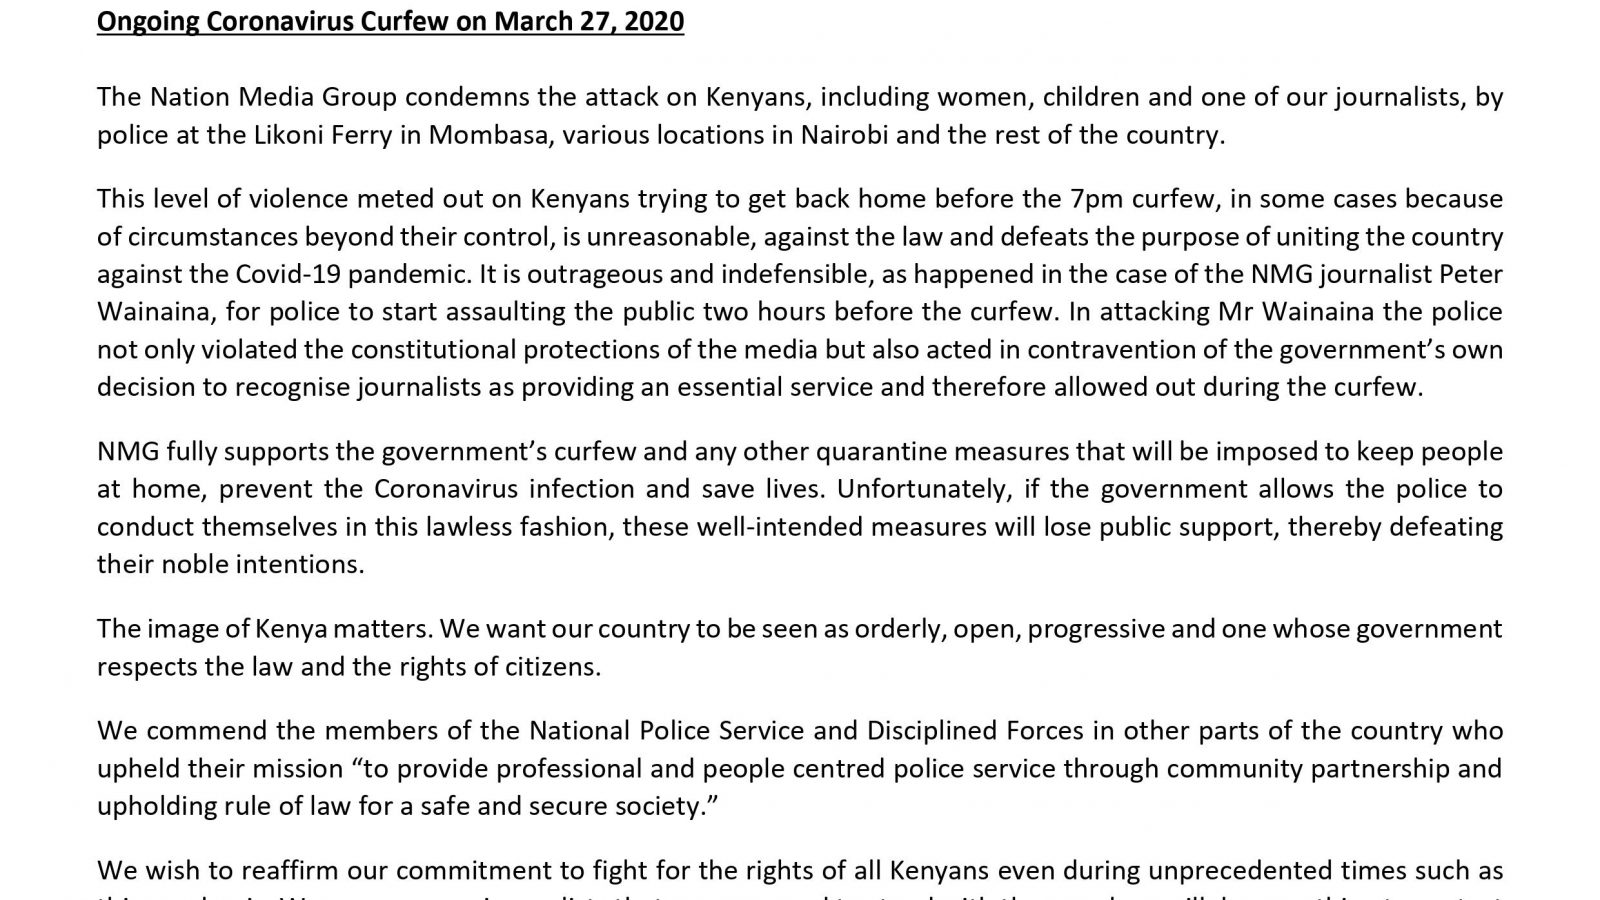 Nation Media Group (NMG) Statement Condemning the Police Brutality on Kenyans and Journalists during the Ongoing Coronavirus Curfew on March 27, 2020